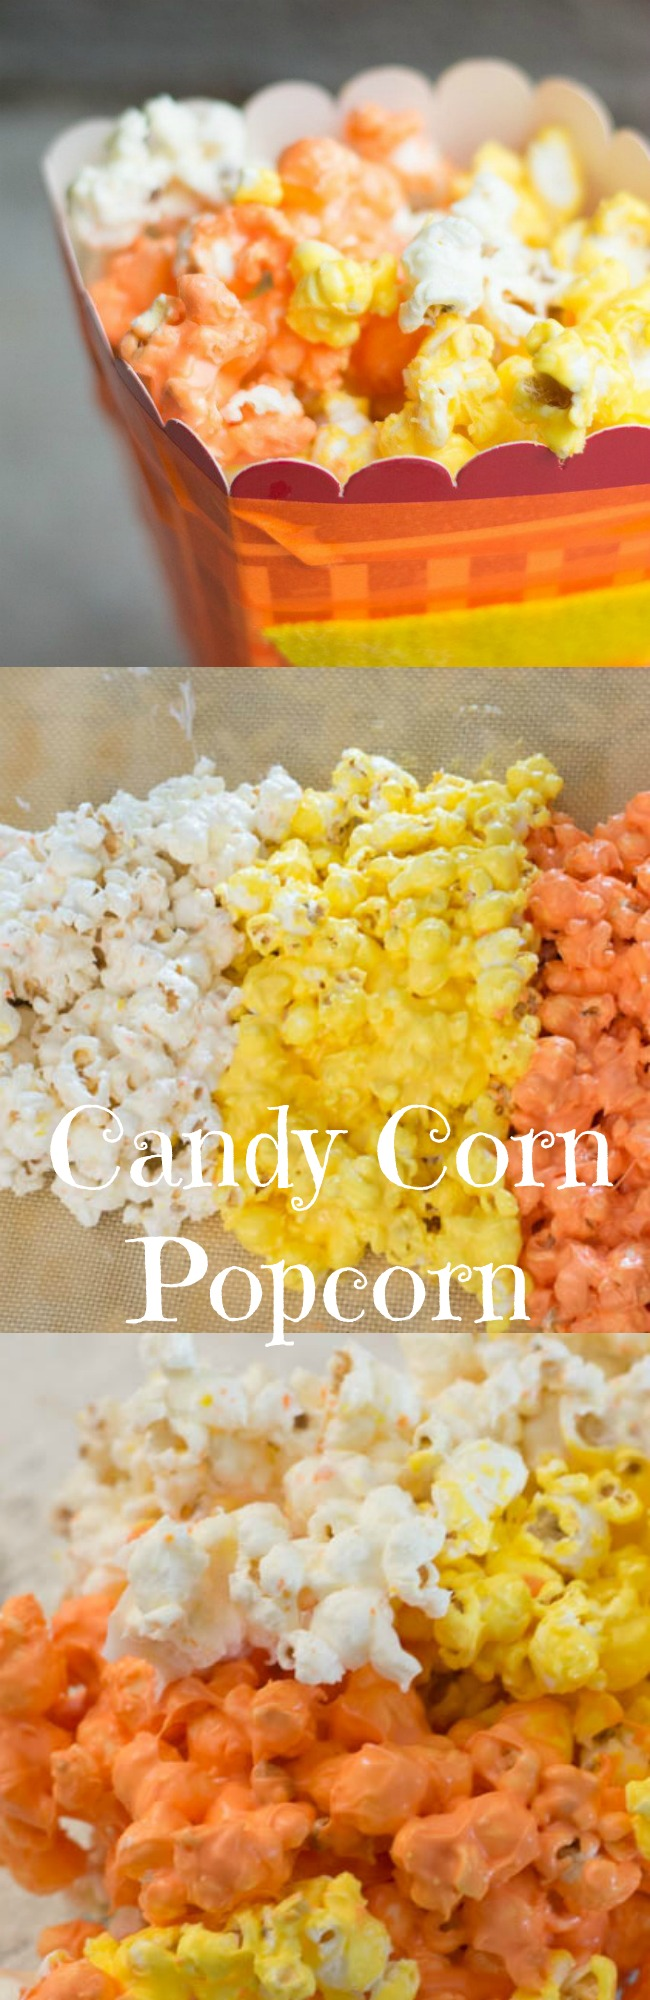 Easy Candy Corn Popcorn with Candy Melts via @clarkscondensed